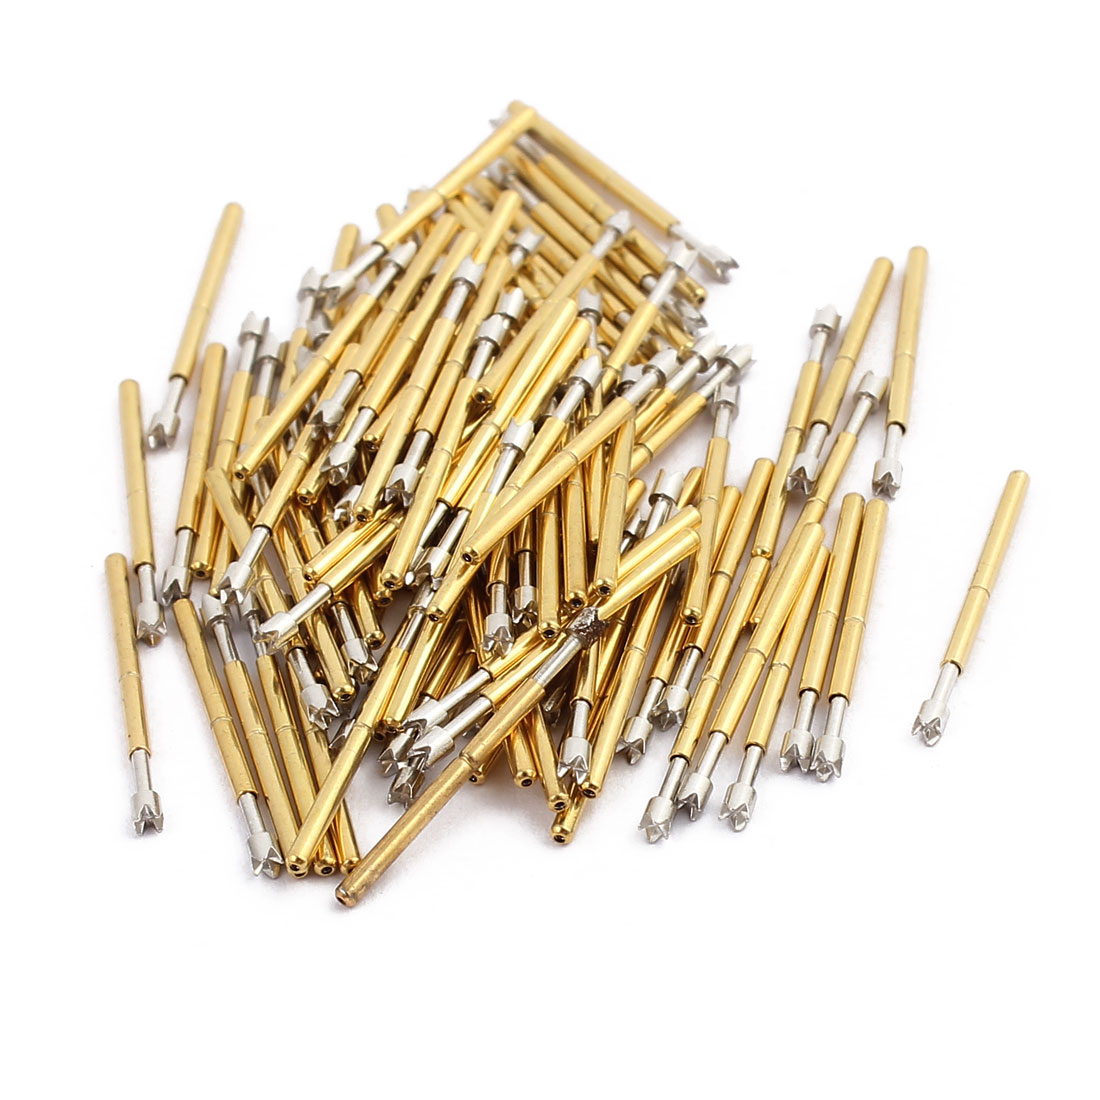 100pcs P75-Q2 1.0mm Dia 16.5mm Length Metal Spring Pressure Test Probe Needle